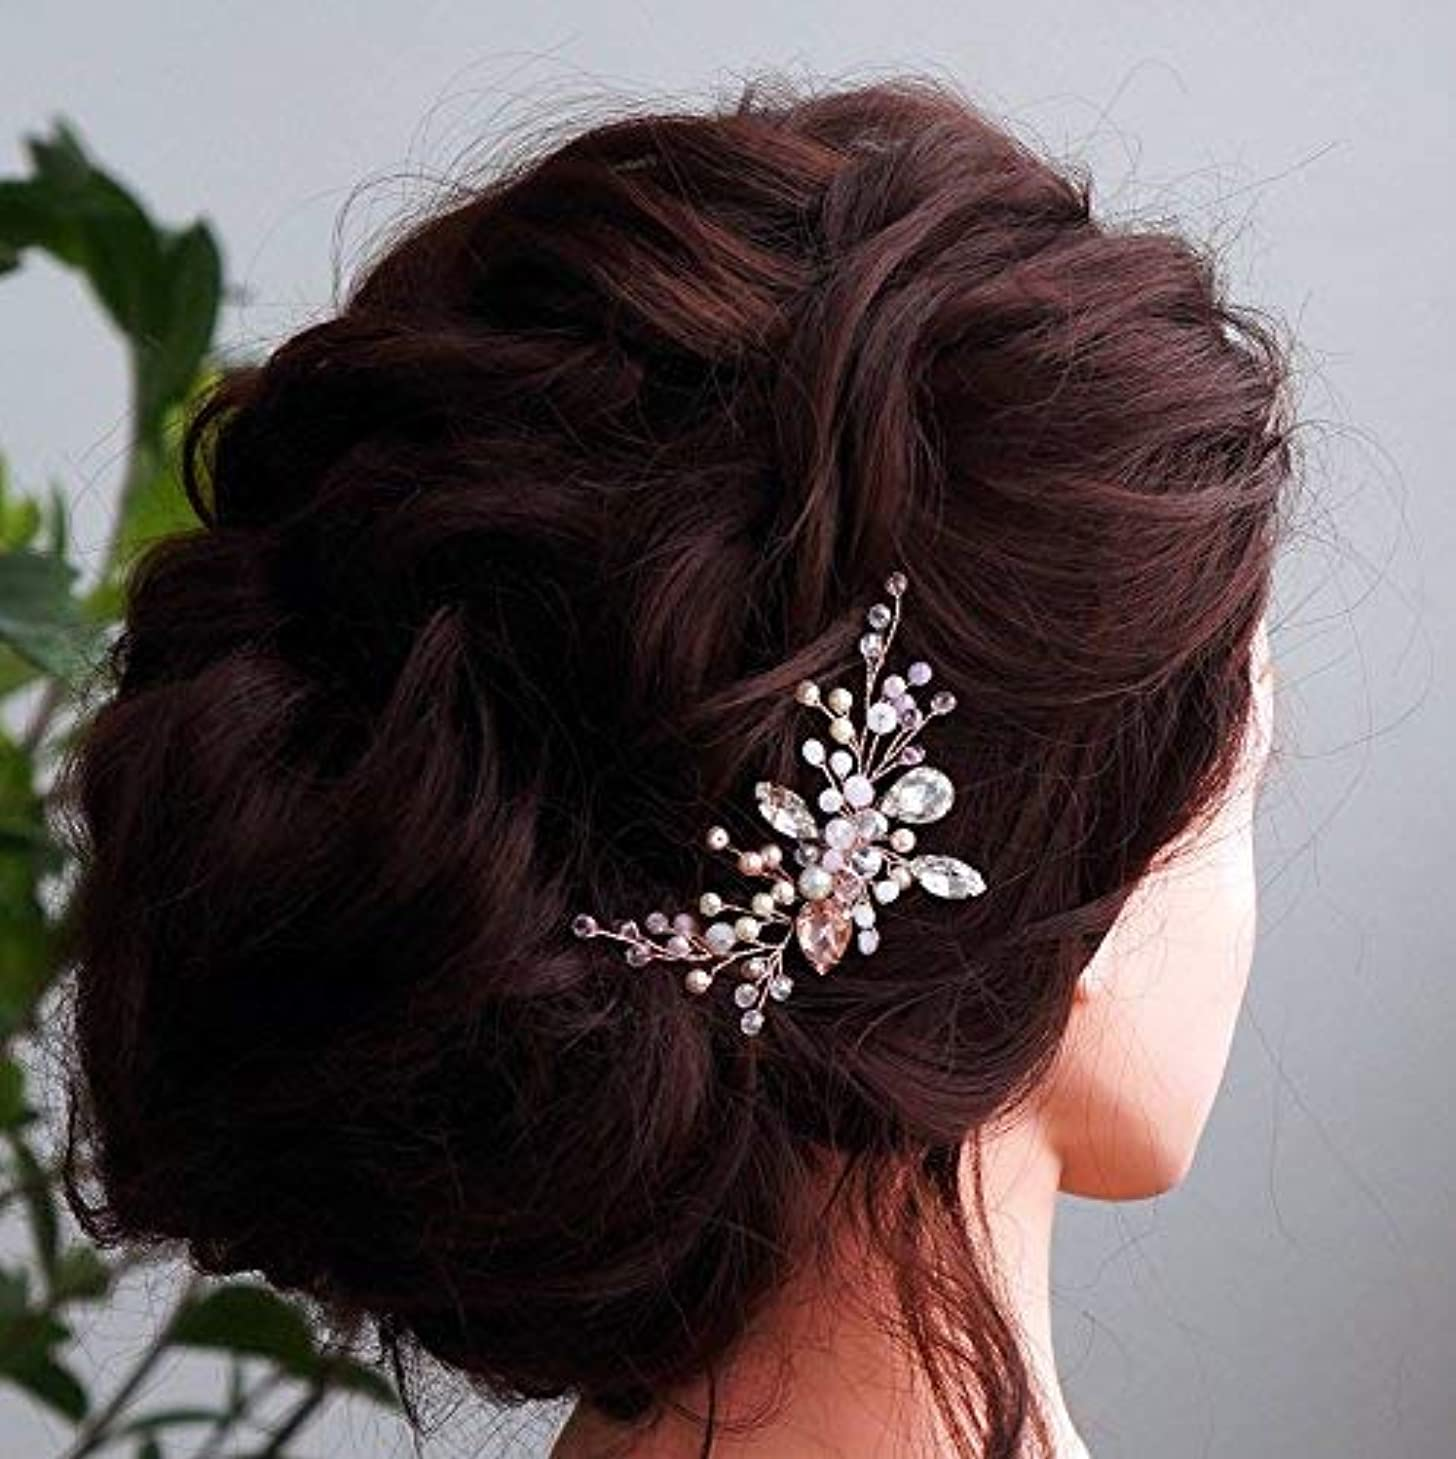 Kercisbeauty Wedding Bridal Bridesmaids Flower Girl Pink Crystal Beads and Rhinestone Tiny Cute Hair Comb Headband...